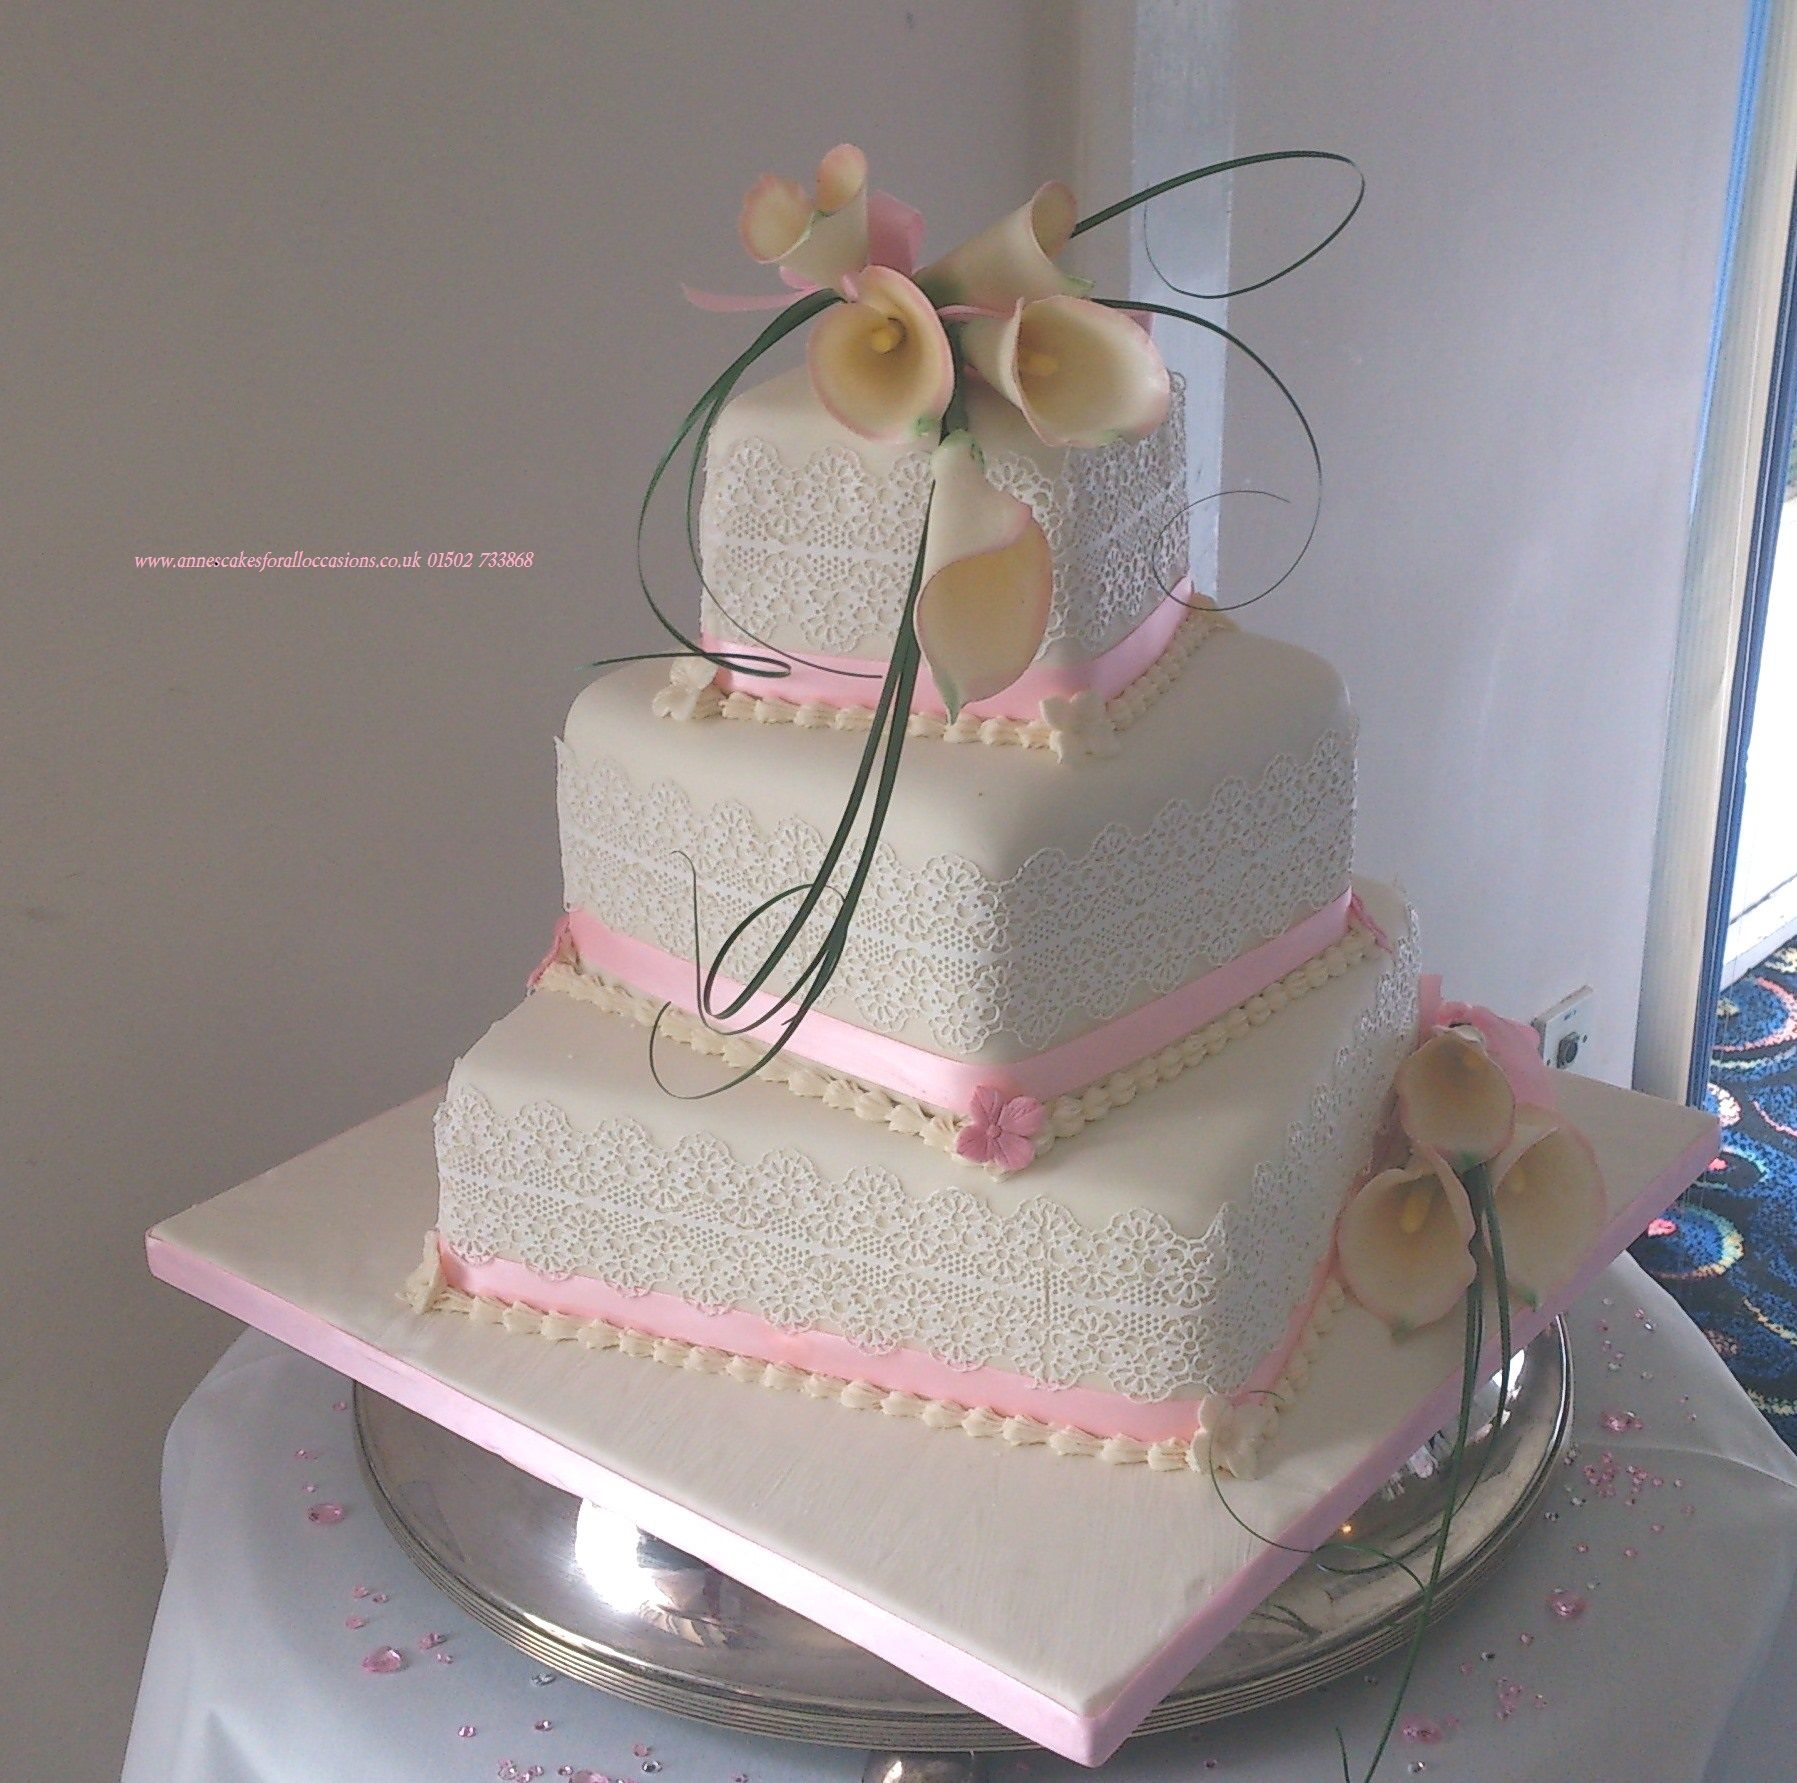 Edible Cake Lace On And 3 Tier Stacked Wedding Adorned With Calla Lily Wired Sugar